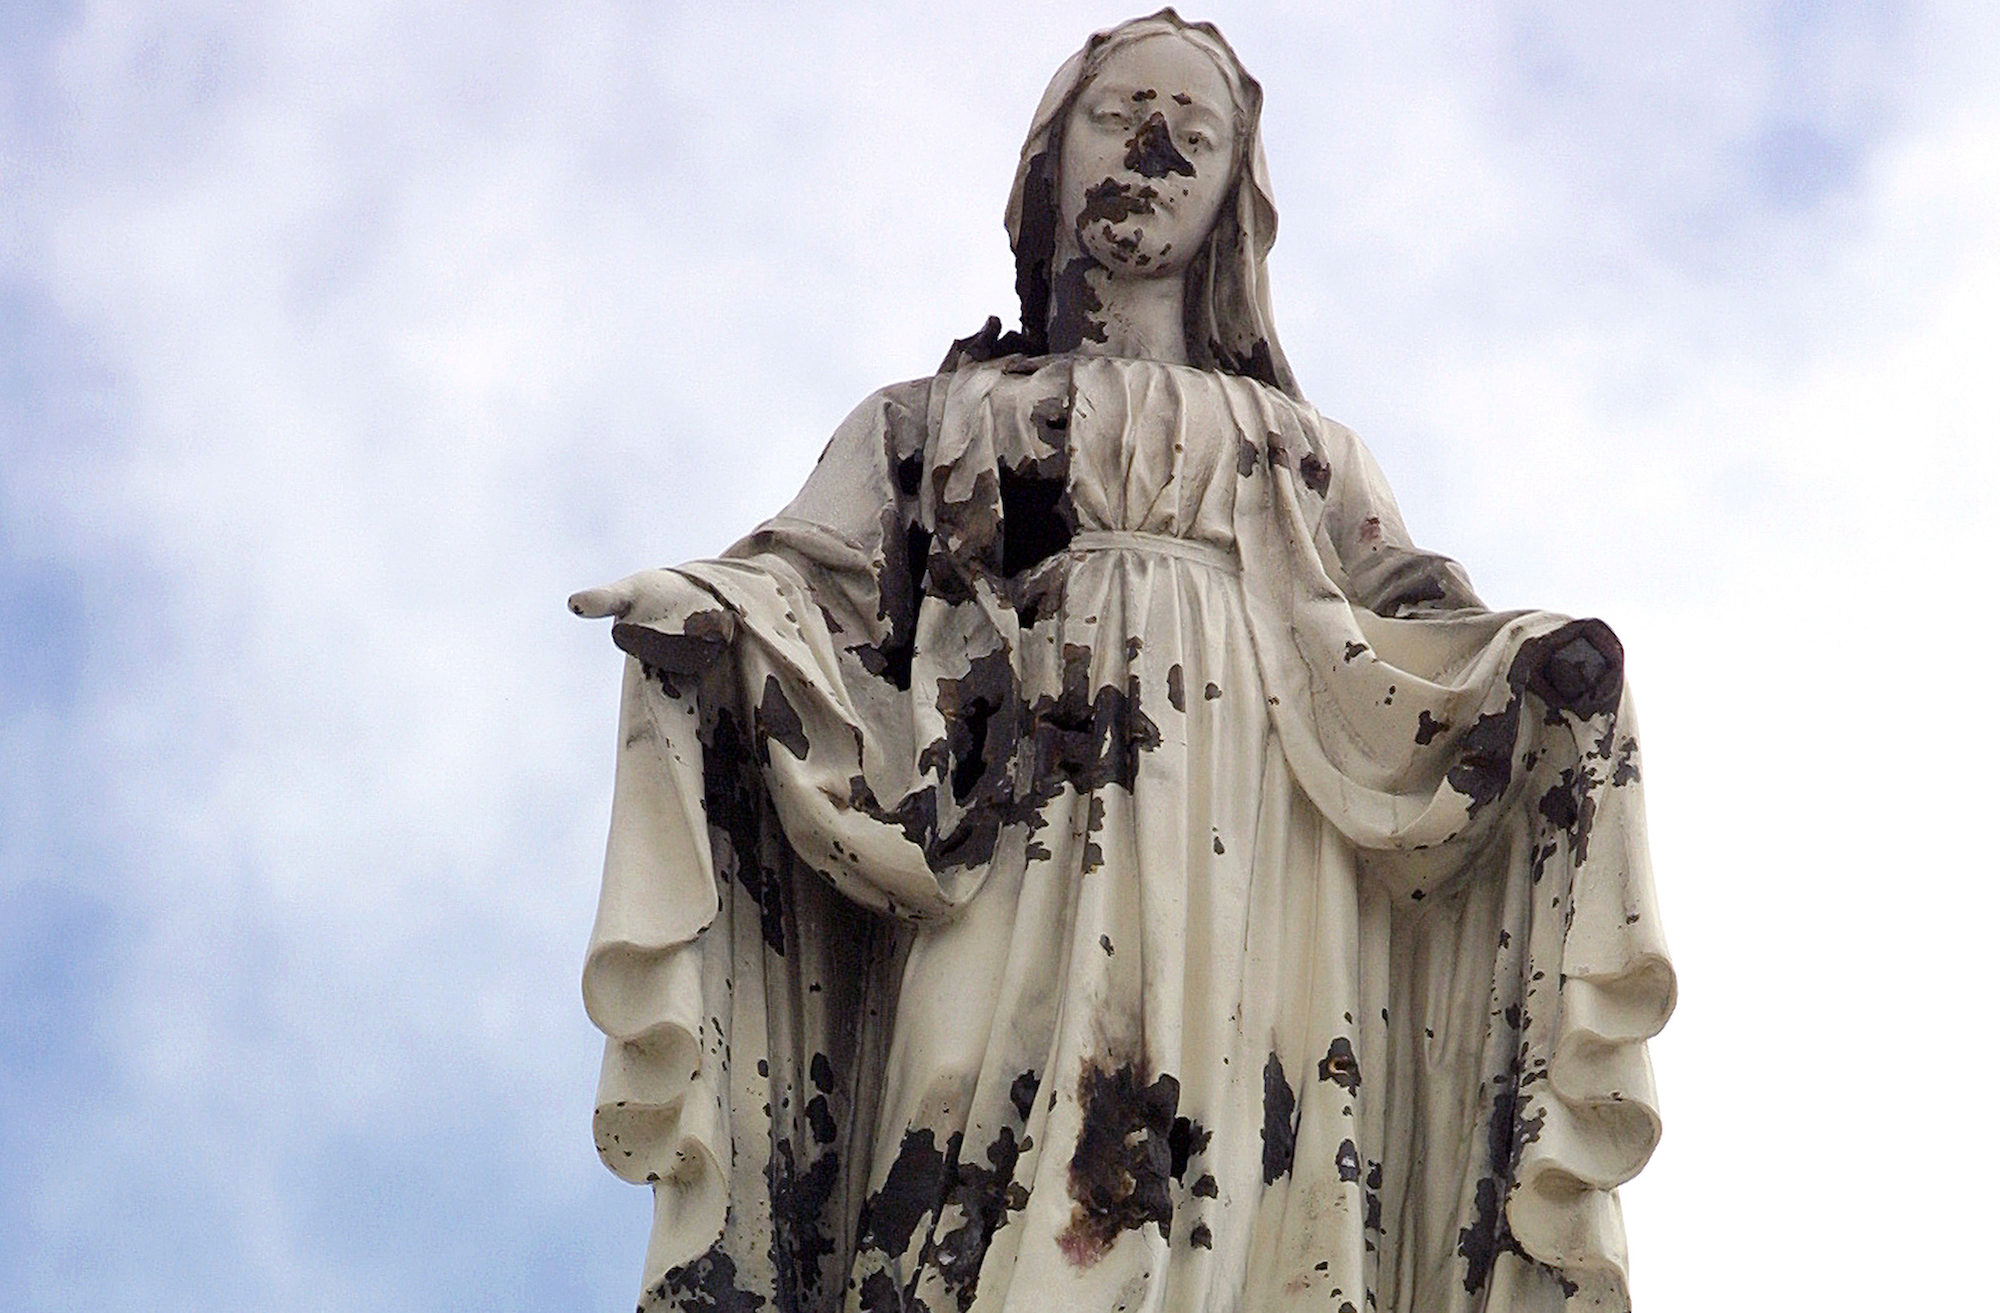 A damaged statue of the Virgin Mary stands atop the chapel of the Holy Family Hospital and Orphanage in Bethlehem. The statue was hit by shrapnel when a shell from an Israeli tank slammed into the church during a predawn attack on March 14, 2002. (Photo by Heidi Levine)